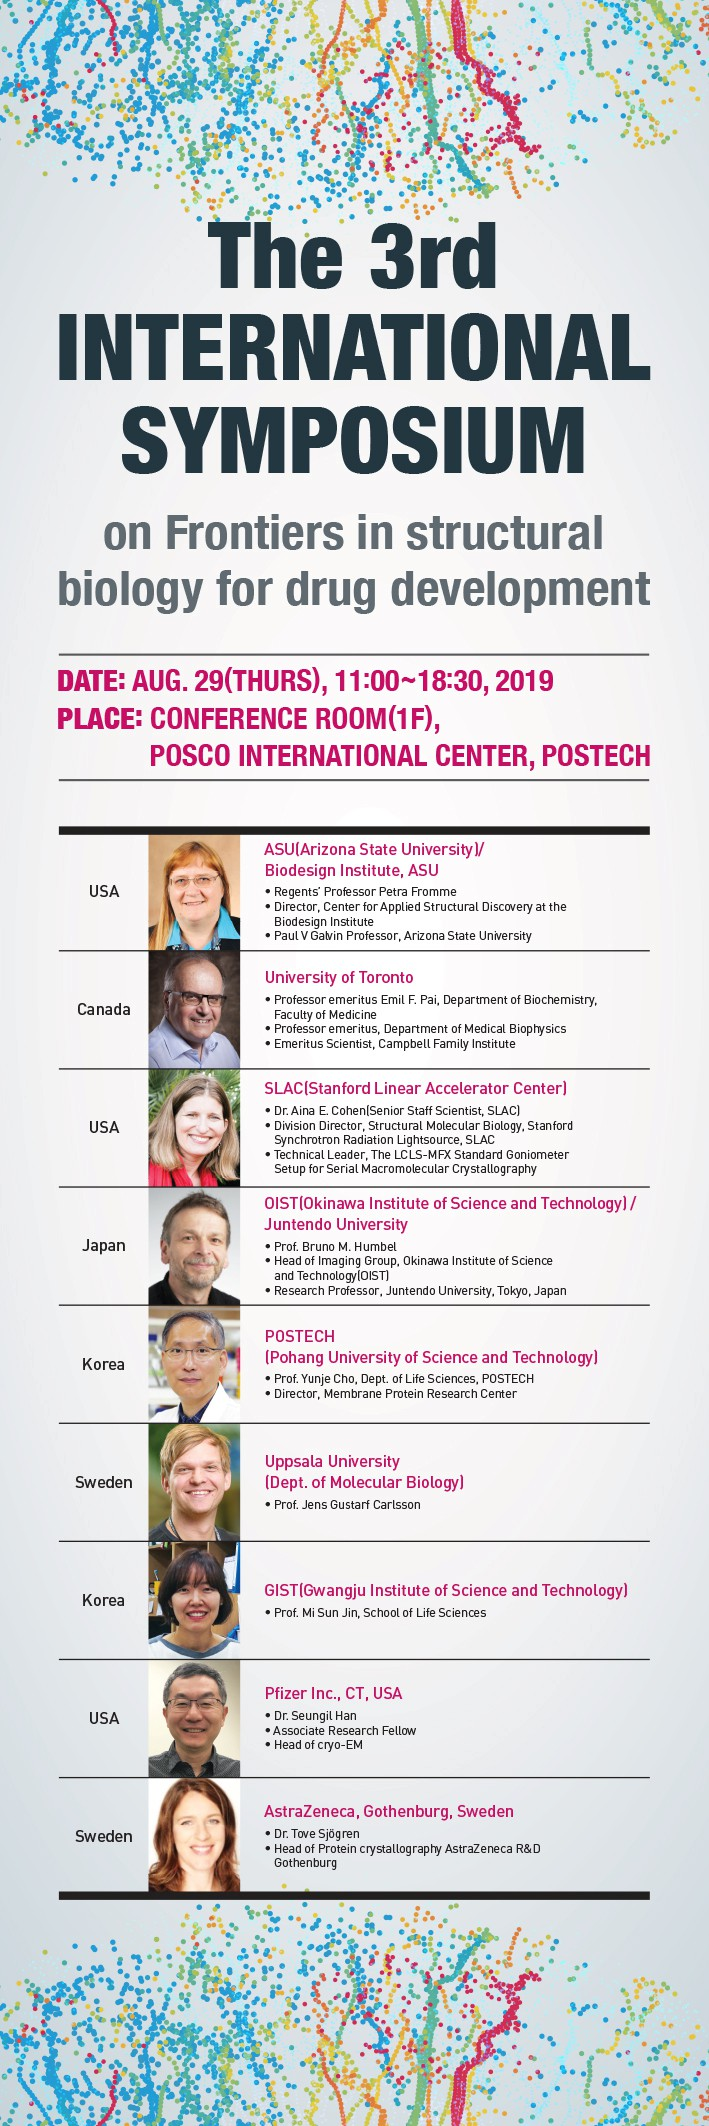 The 3rd INTERNATIONAL SYMPOSIUM on Frontiers in structural biology for drug development // DATE:AUG 29(THURS), 11;00~18:30,2019 PLACE:CONFERENCE ROOM(1F),POSCO INTERNATIONAL CENTER,POSTECH // - USA ASU(Arizona State University)/Biodesign Institute, ASU -Regents Professor Petra Fromme -Director, Center for Applied Structural Discovery at the Biodesign Institute -Paul V Galvin Professor, Arizona State University // Canada University of Tronto -Professor emeritus Emil F. Pai, Department of Biochemistry, Faculty of Medicine -Professor emeritus, Department of Medical Biophysics -Emeritus Scientist, Campbell Family Institute // USA SLAC(Stanford Linear Accelerator Center) -Dr.Aina E. Cohen(Senior Staff Scientist, SLAC) -Division Director, Structural Molecular Biology,Stanford Synchrotron Radiation Lightsource, SLAC -Technical Leader, The LCLS-MFX Srandard Goniometer Setup for Seral Macromolecular Crystallography // Japan OIST(Okinawa Institute of Science and Technology)/Juntendo University -Prof.Bruno M. Humbel -Head of Imafinf Froup, Okinawa Institute of Science and Technology(OIST) -Rearch Professor, Juntendo University, Tokyo,Japan // Korea POSTECH(Pohang University of Science and Technology) -Prof.Yunje Cho,Dept. of Life Sciences, POSTECH -Director, Membratein Research Center // Sweden Uppsala University(Dept.of Molecular Biology) -Prof.Jens Gustarf Carlsson // Korea Gist(Gwangju Institute of Science and Technology) -Prof.Mi Sun Jin, School of Life Sciences // USA Pfixer Inc.,CT, USA -Dr.Seungil Han -Associate Research Fellow -Head of cryo-EM // Sweden AstraZeneca, Gothenburg,Sweden -Dr.Tove Sjogren -Head of Protein crystallography AstraZeneca R&D Gothenburg